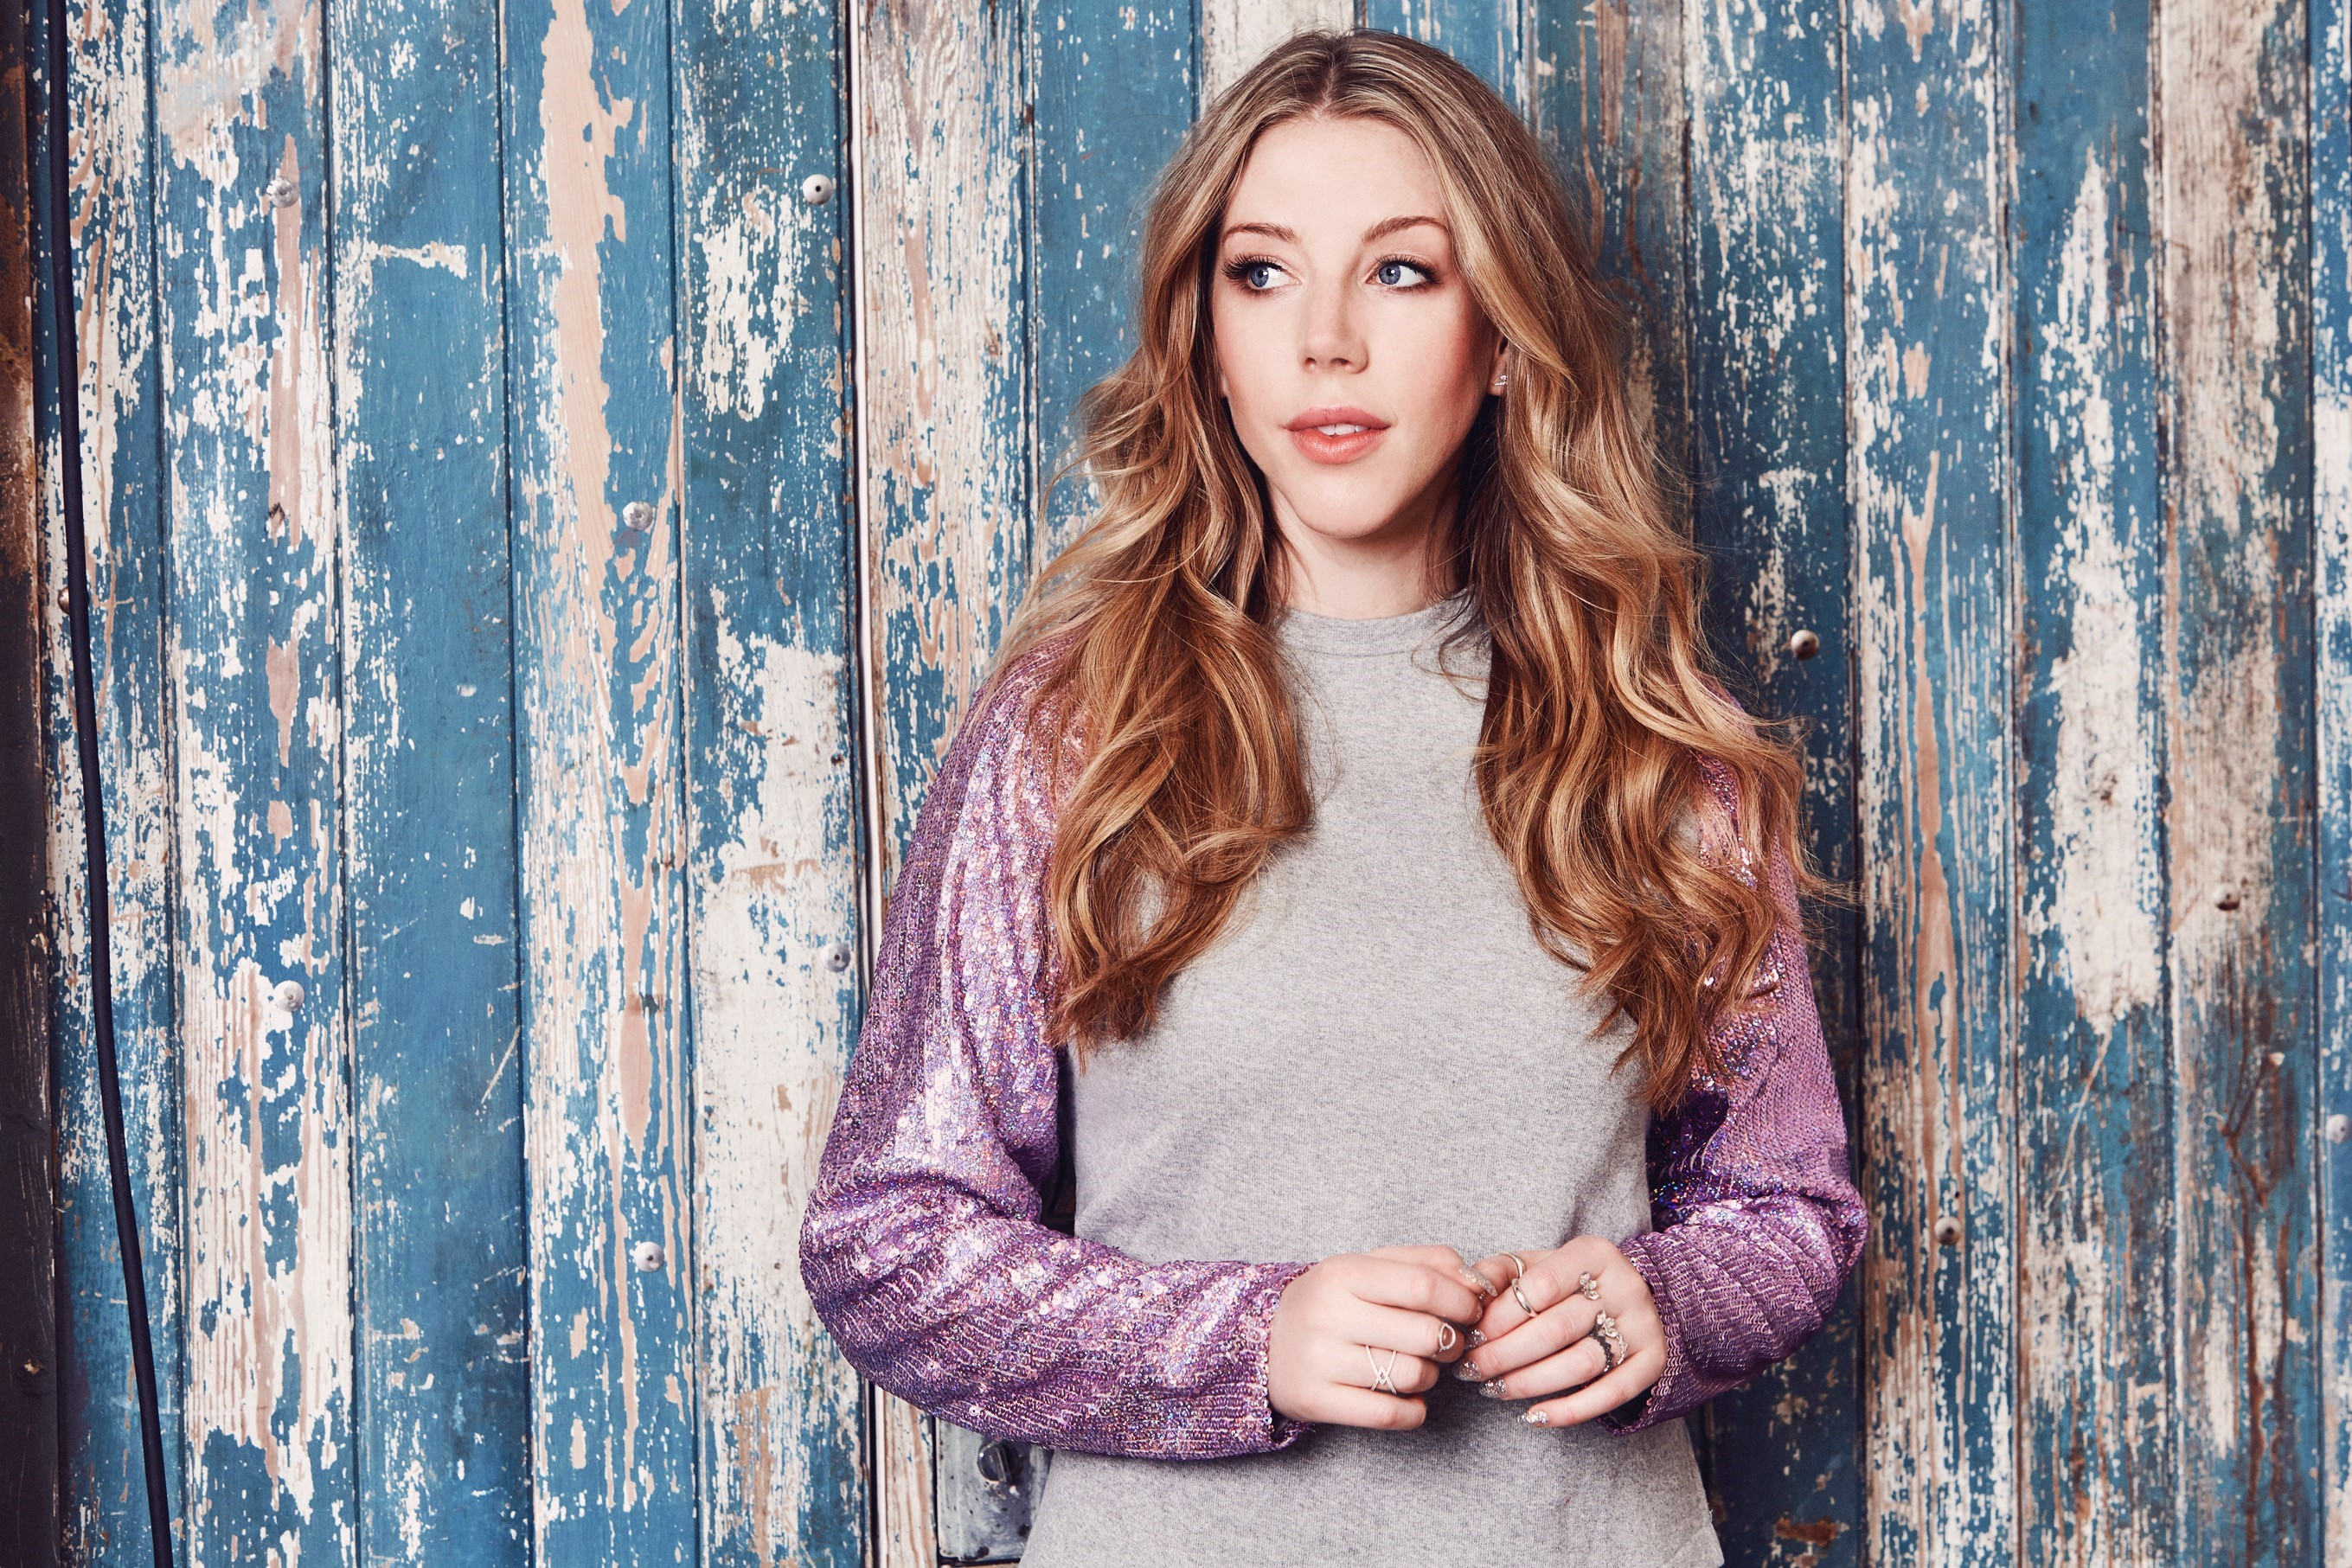 Student Life Guide meets Katherine Ryan